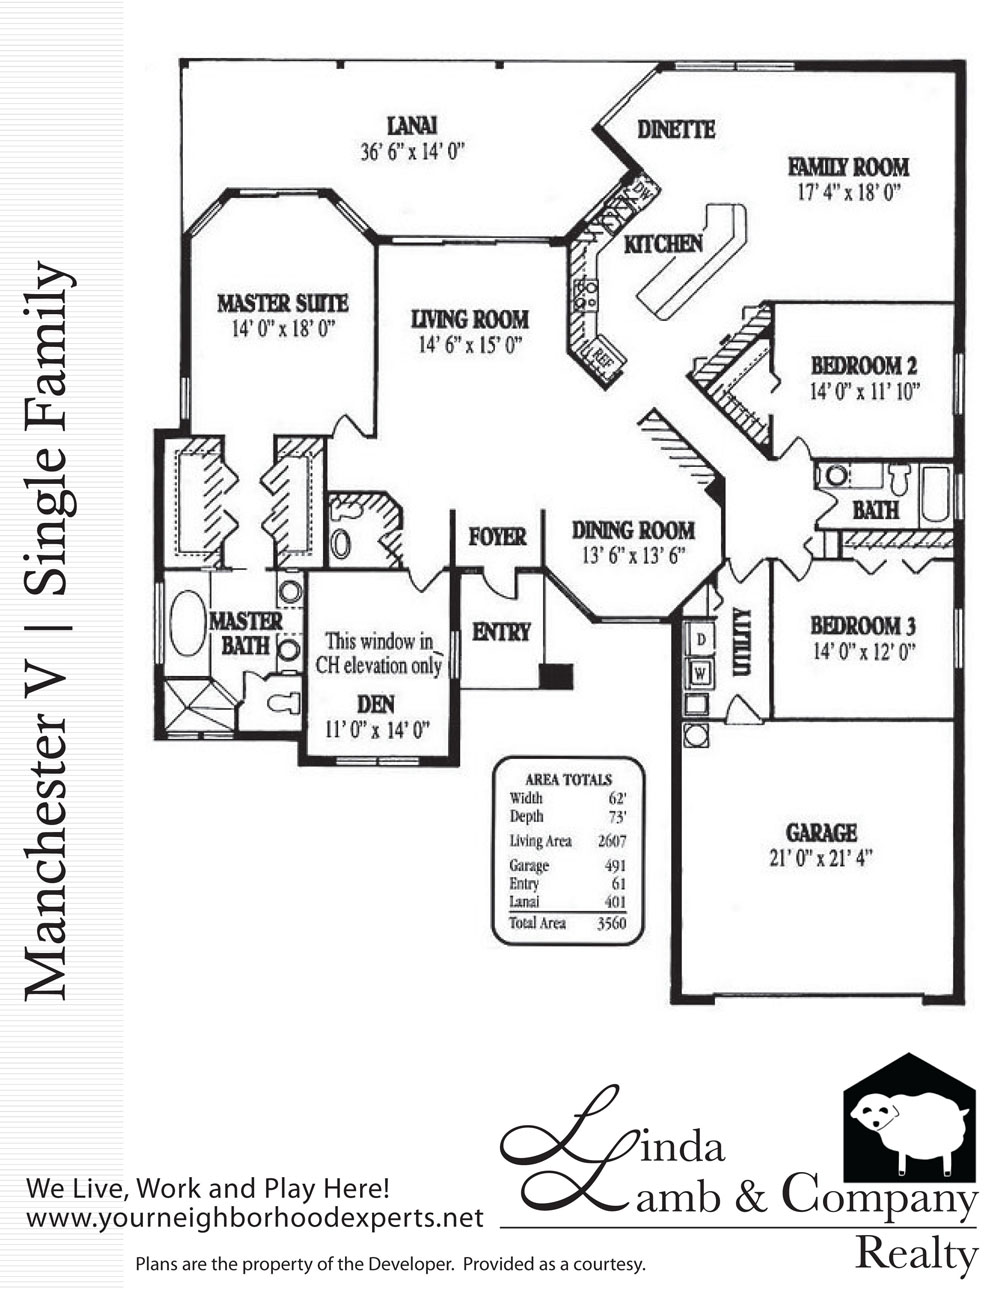 floor plan companies On house plan companies